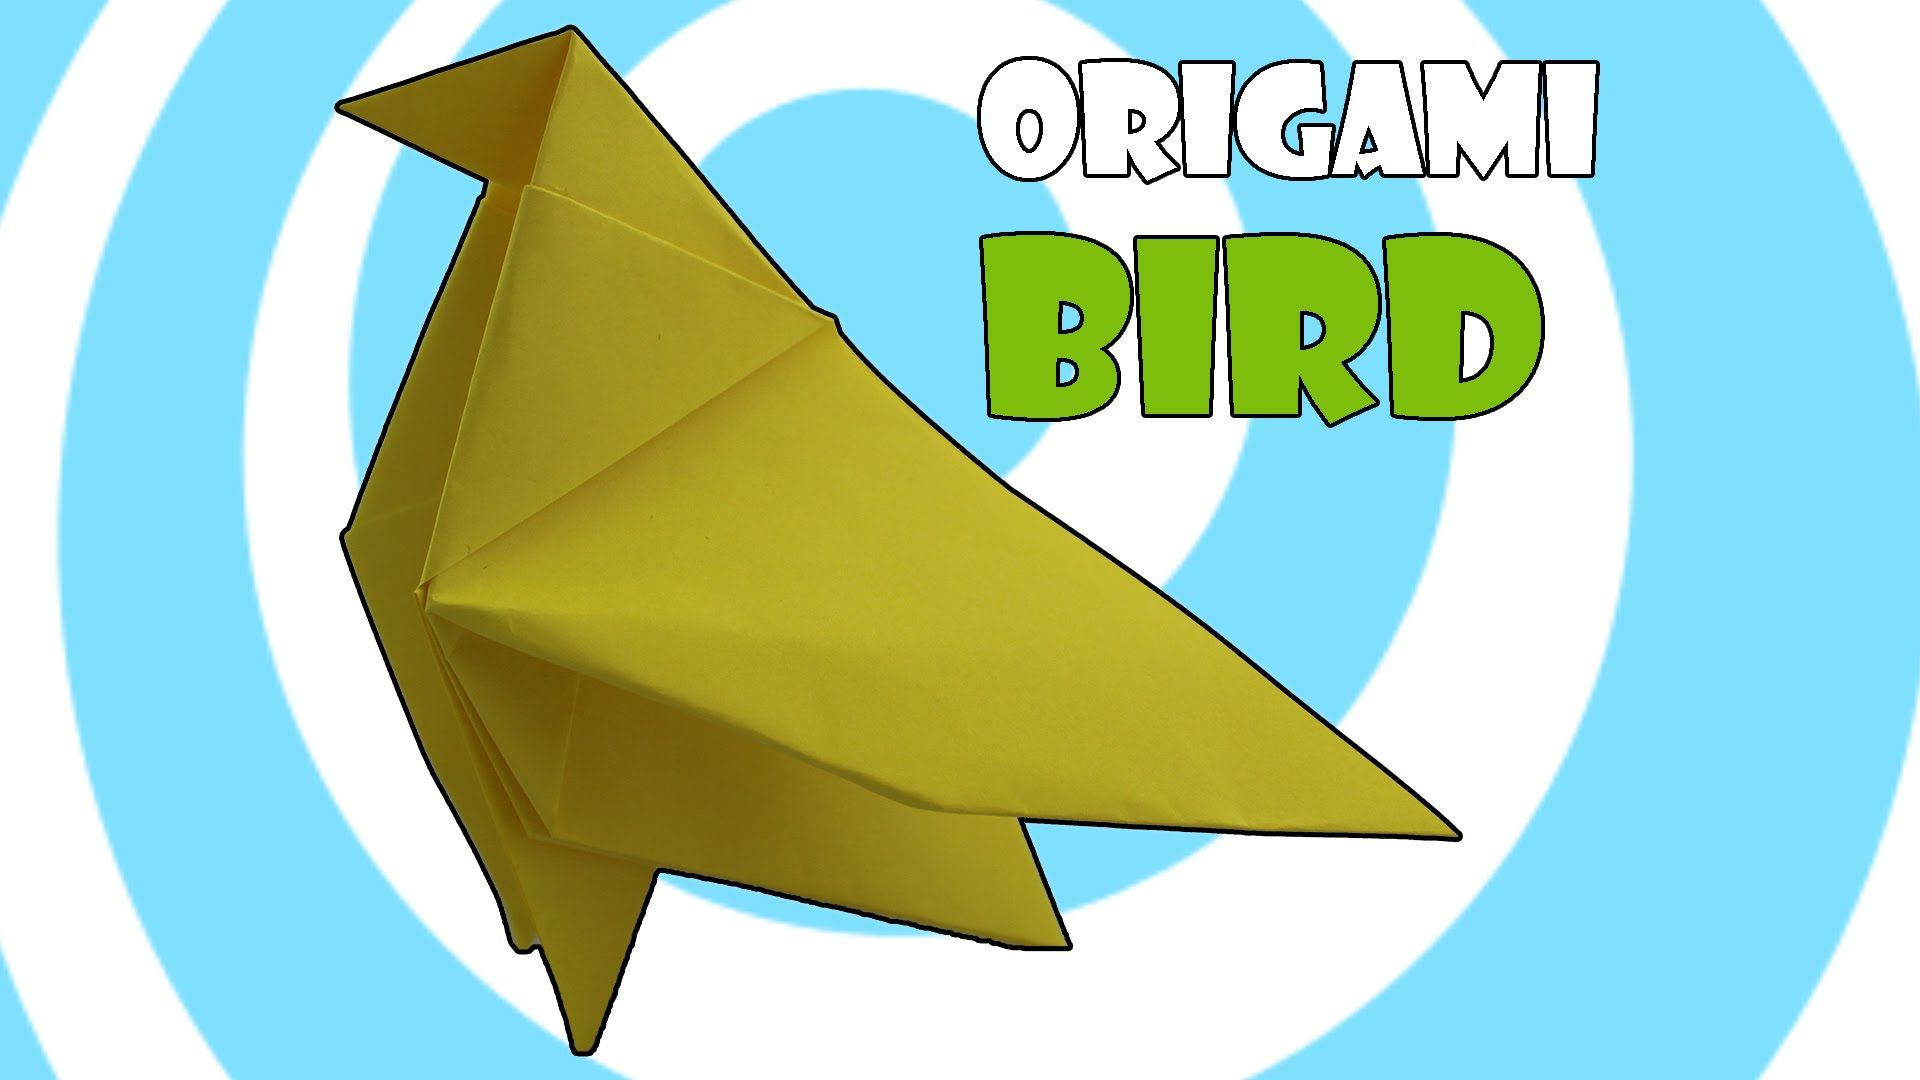 Diy simple origami moon tutorial origami origami instructions diy simple origami moon tutorial origami origami instructions pinterest simple origami origami and tutorials jeuxipadfo Image collections